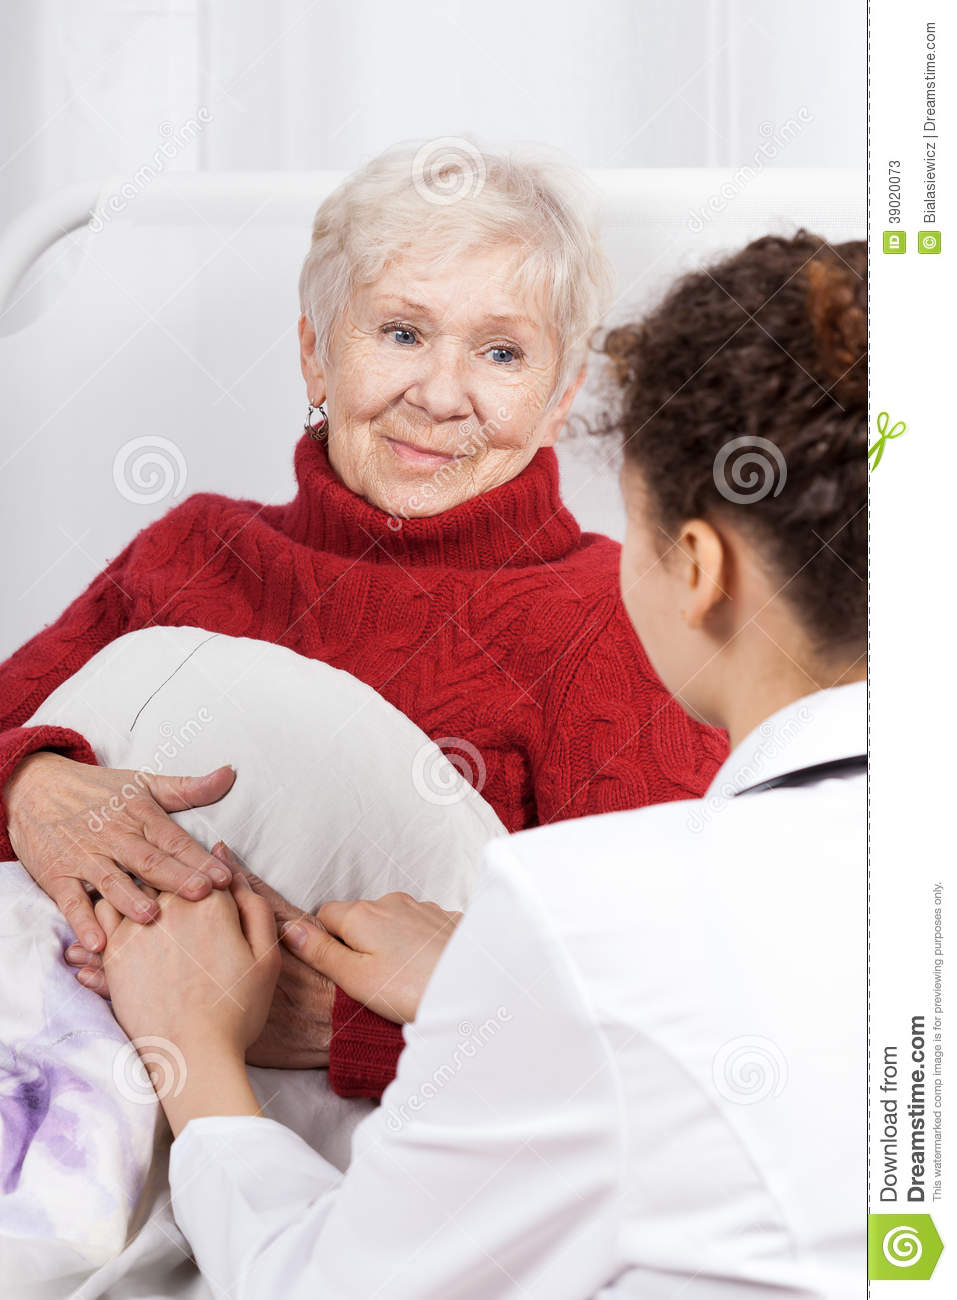 Nurse Taking Care Of Patient Stock Photo - Image: 39020073